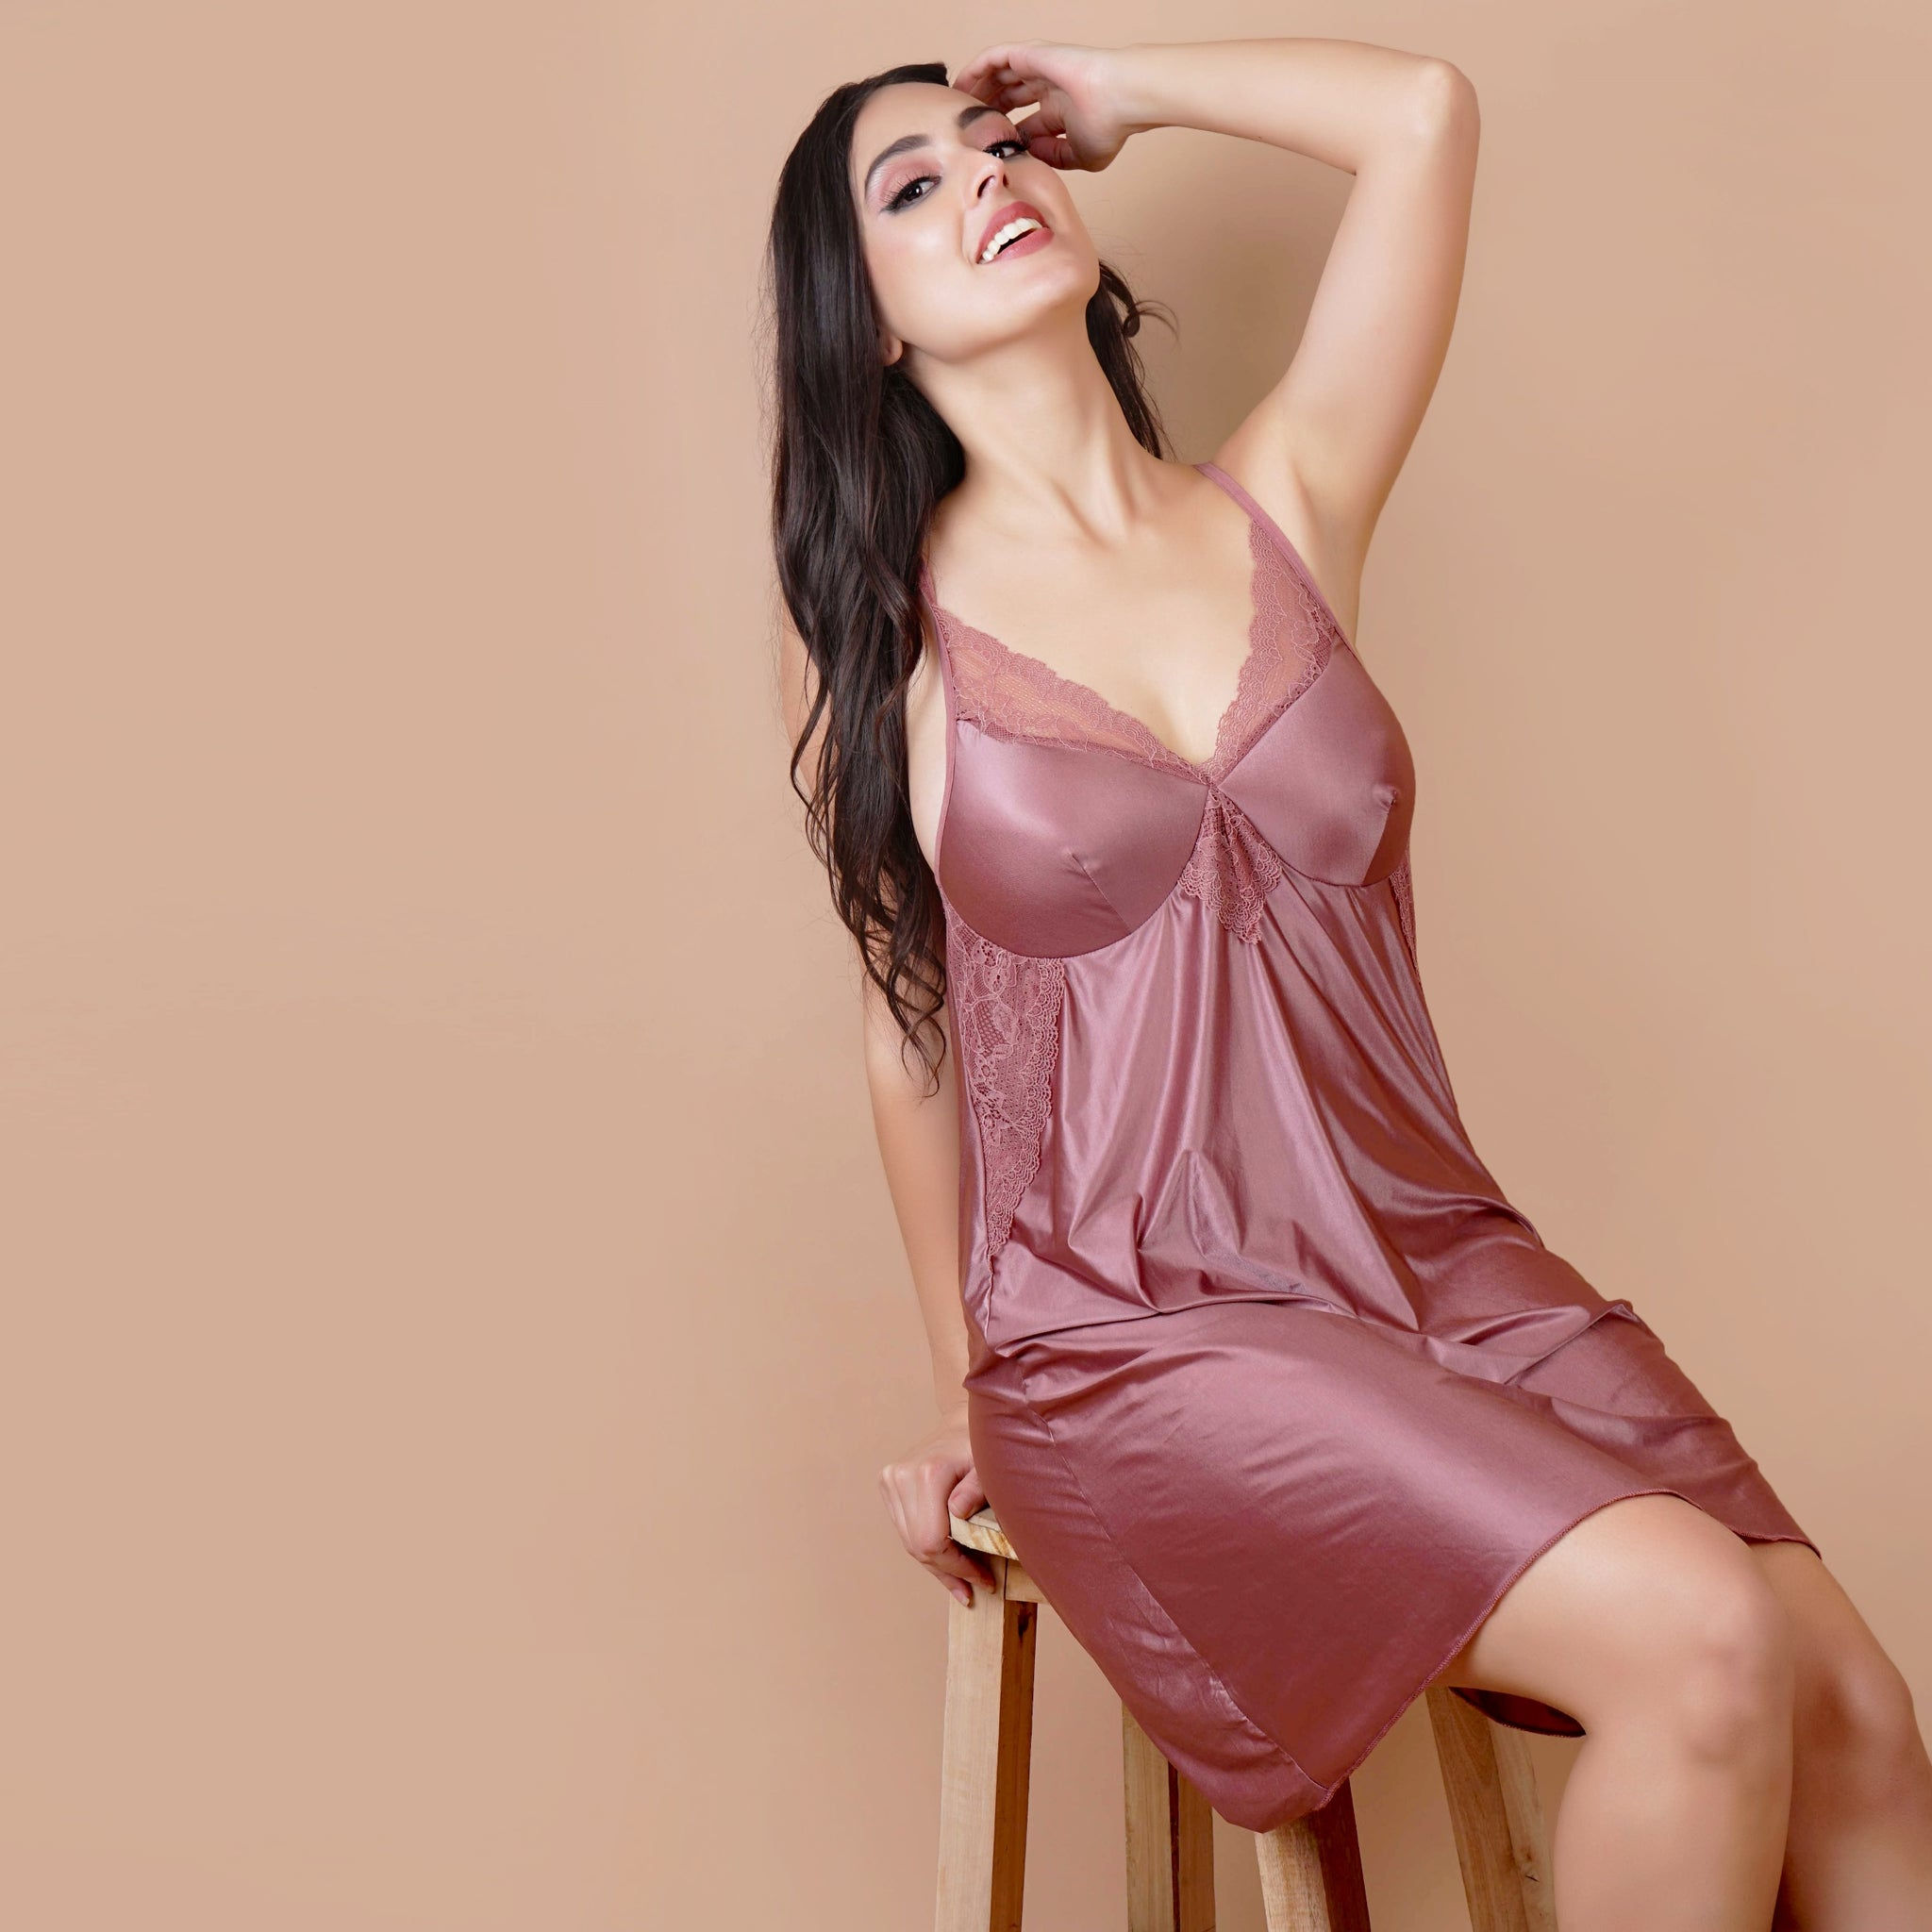 Ficuster V-Neck Wine Color Babydoll Nightwear